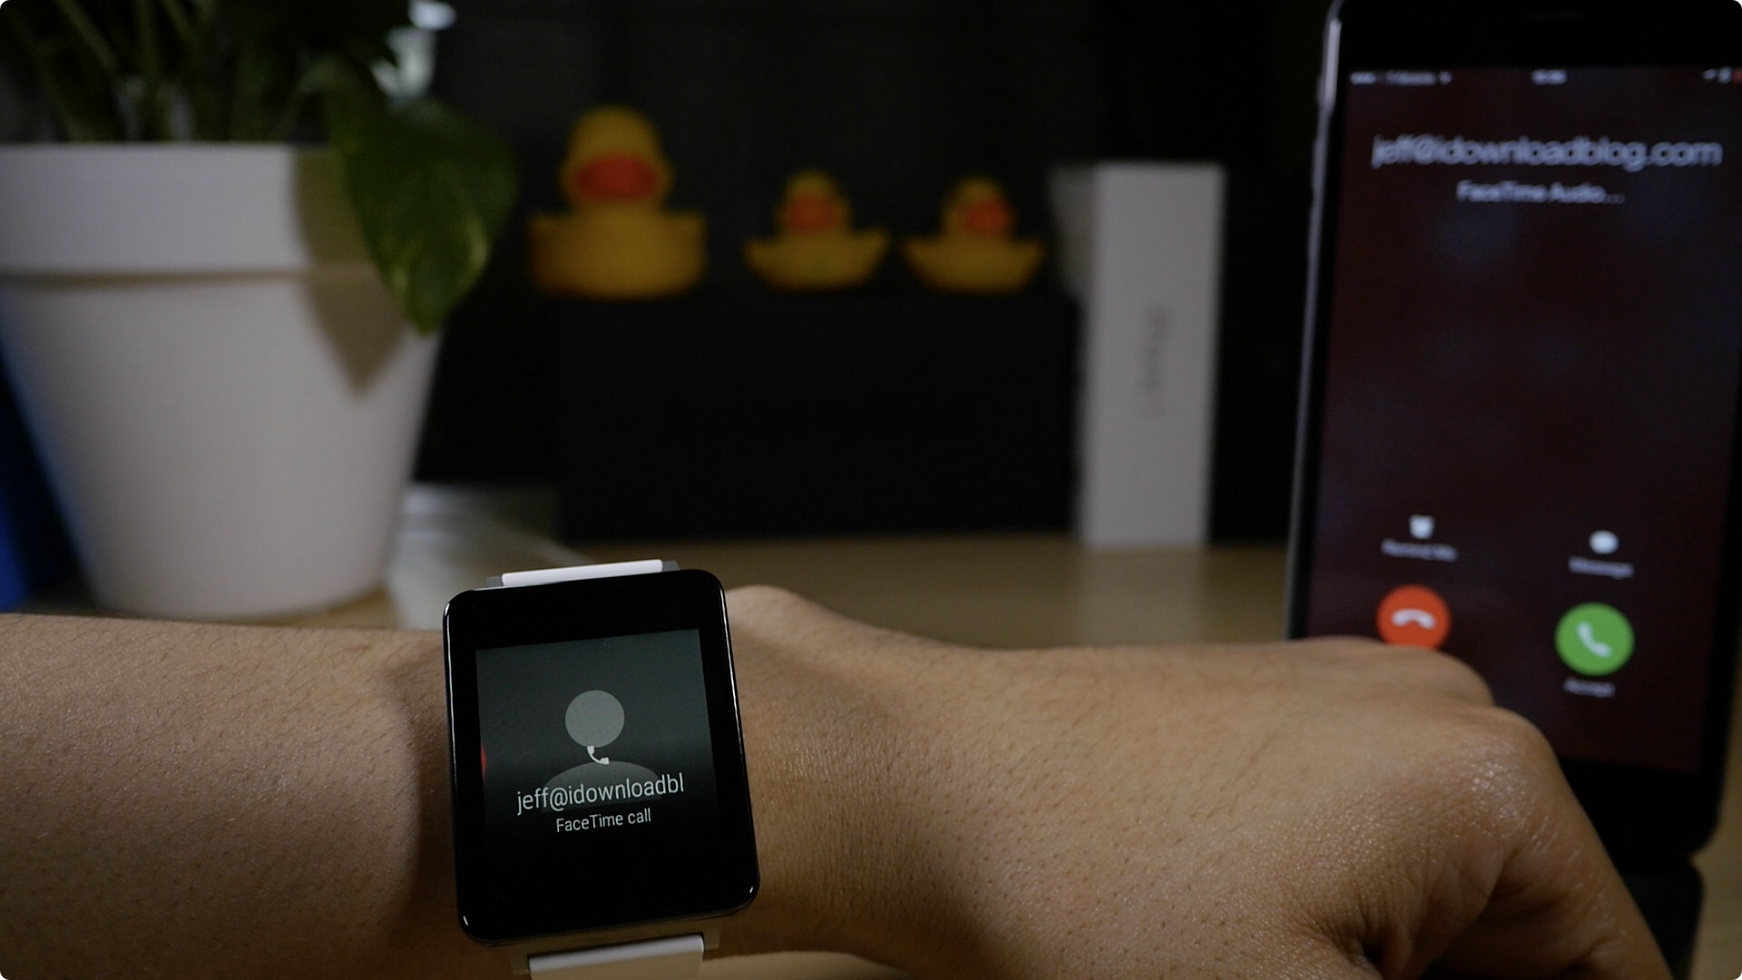 Android Wear FaceTime